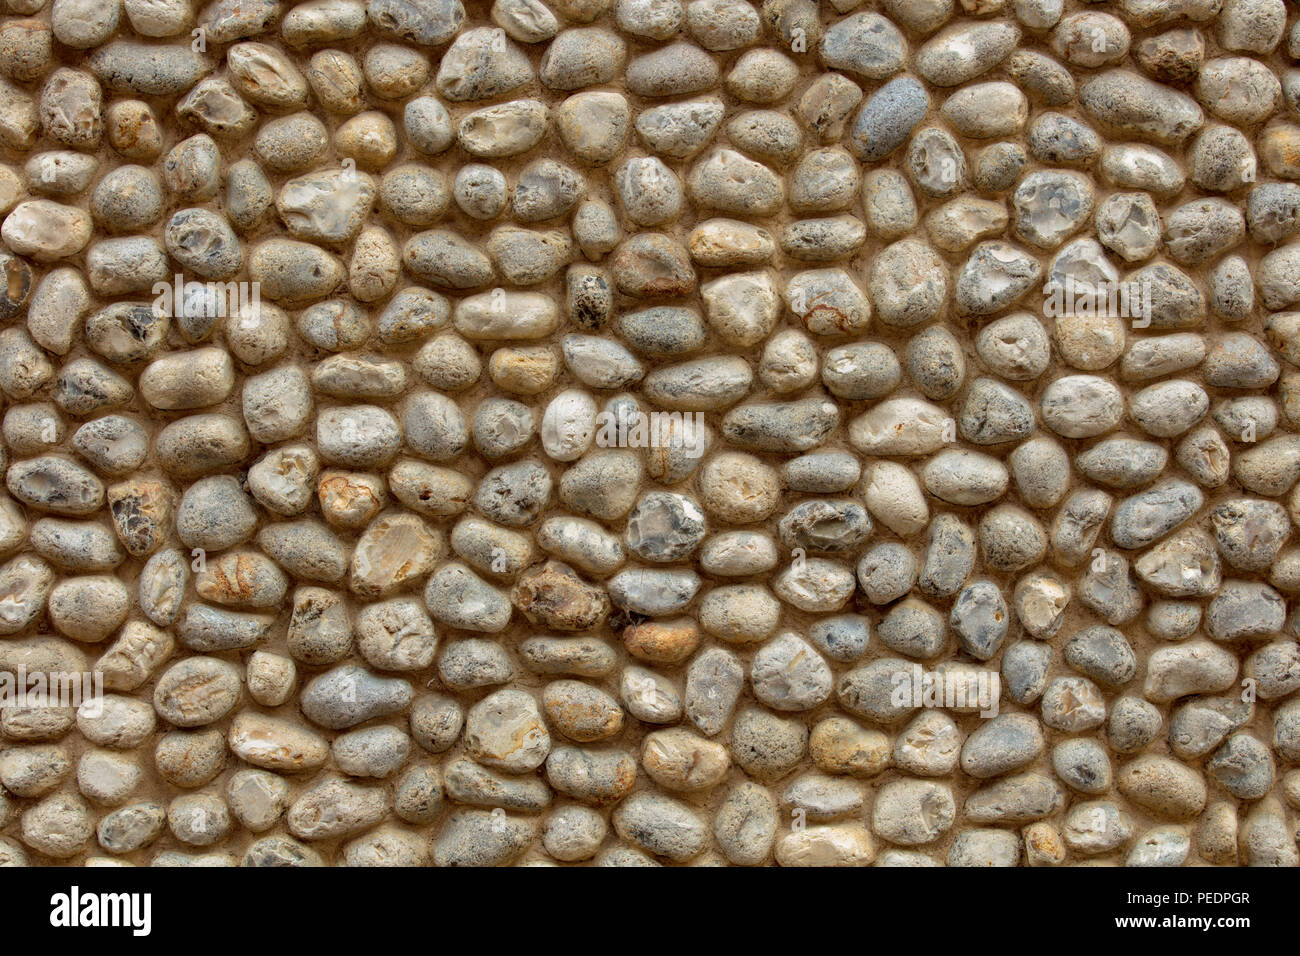 Medieval wall made of pebbles laid in mortar, old town of Norwich, UK. - Stock Image